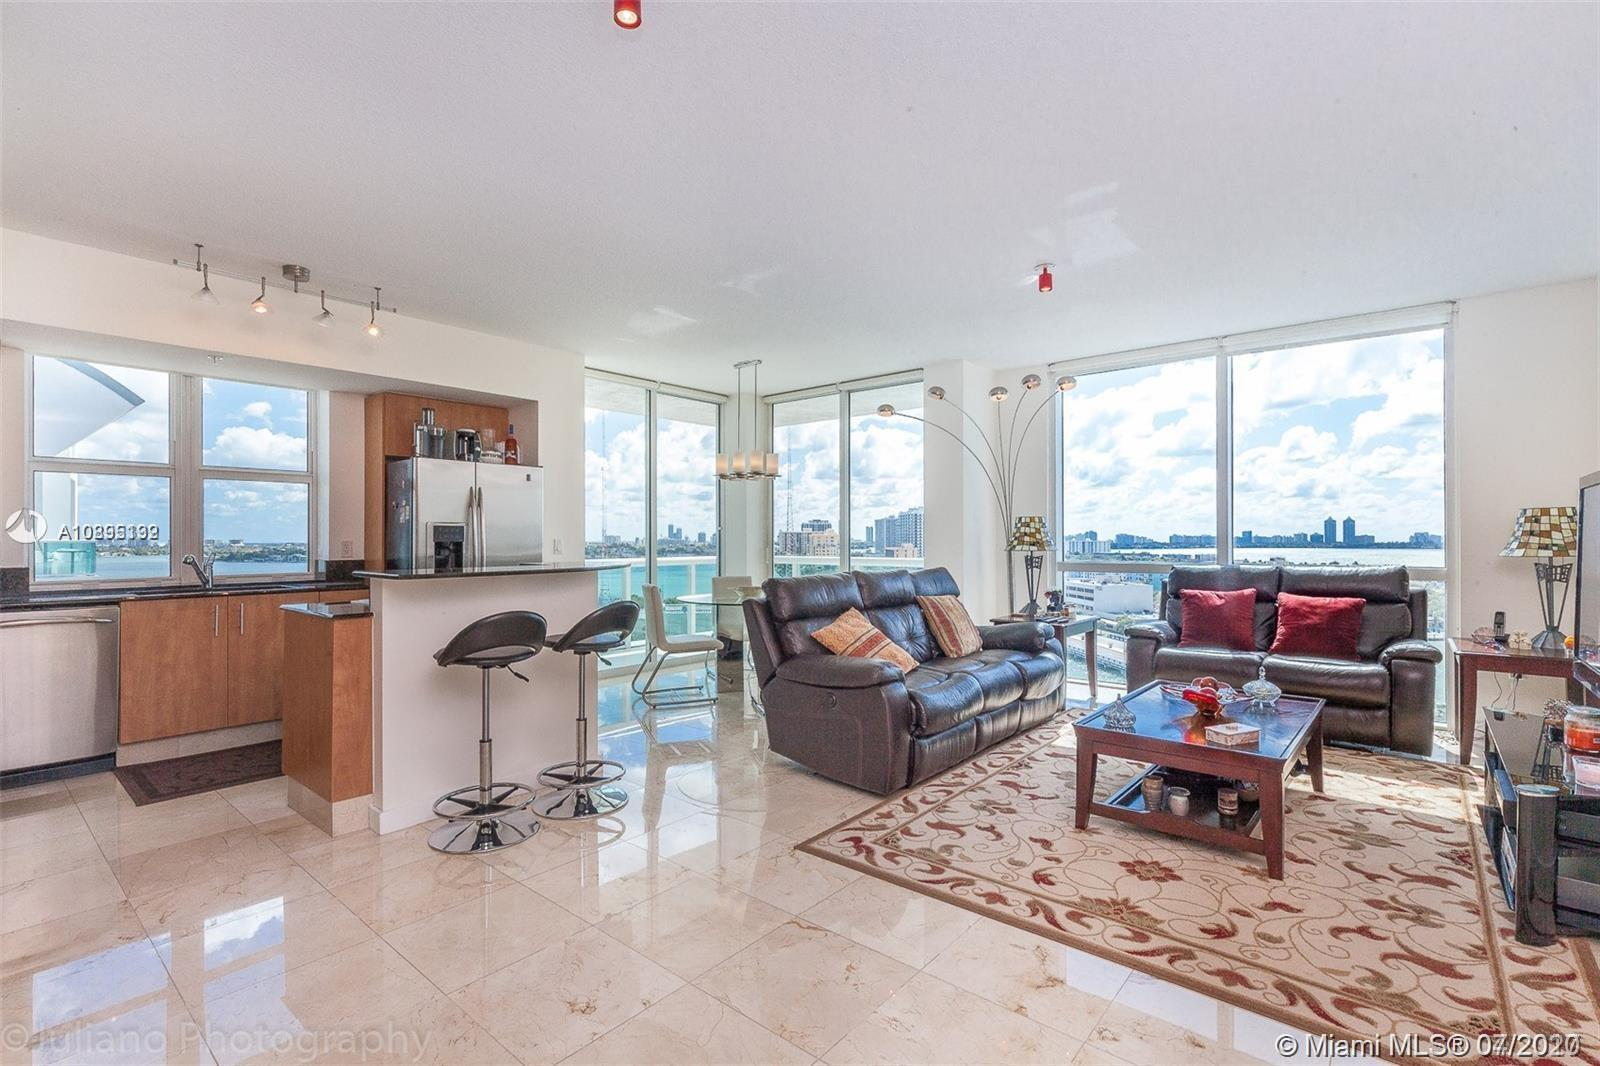 2-bedroom/2-bath + DEN at the lovely 360 in North Bay Village. Unit features marble floors in the living areas baths and kitchen. Unit is a corner unit with a wrap around balcony with spectacular views facing south east, overlooking Biscayne Bay and the Causeway. View of downtown skyline from the large balcony, which is completely private. Unit comes with 2 assigned parking spots and unlimited valet (free). 2 beautiful pools with cabanas/chaises, fantastic gym w/ sauna, 24-hour security. Association includes cable and internet